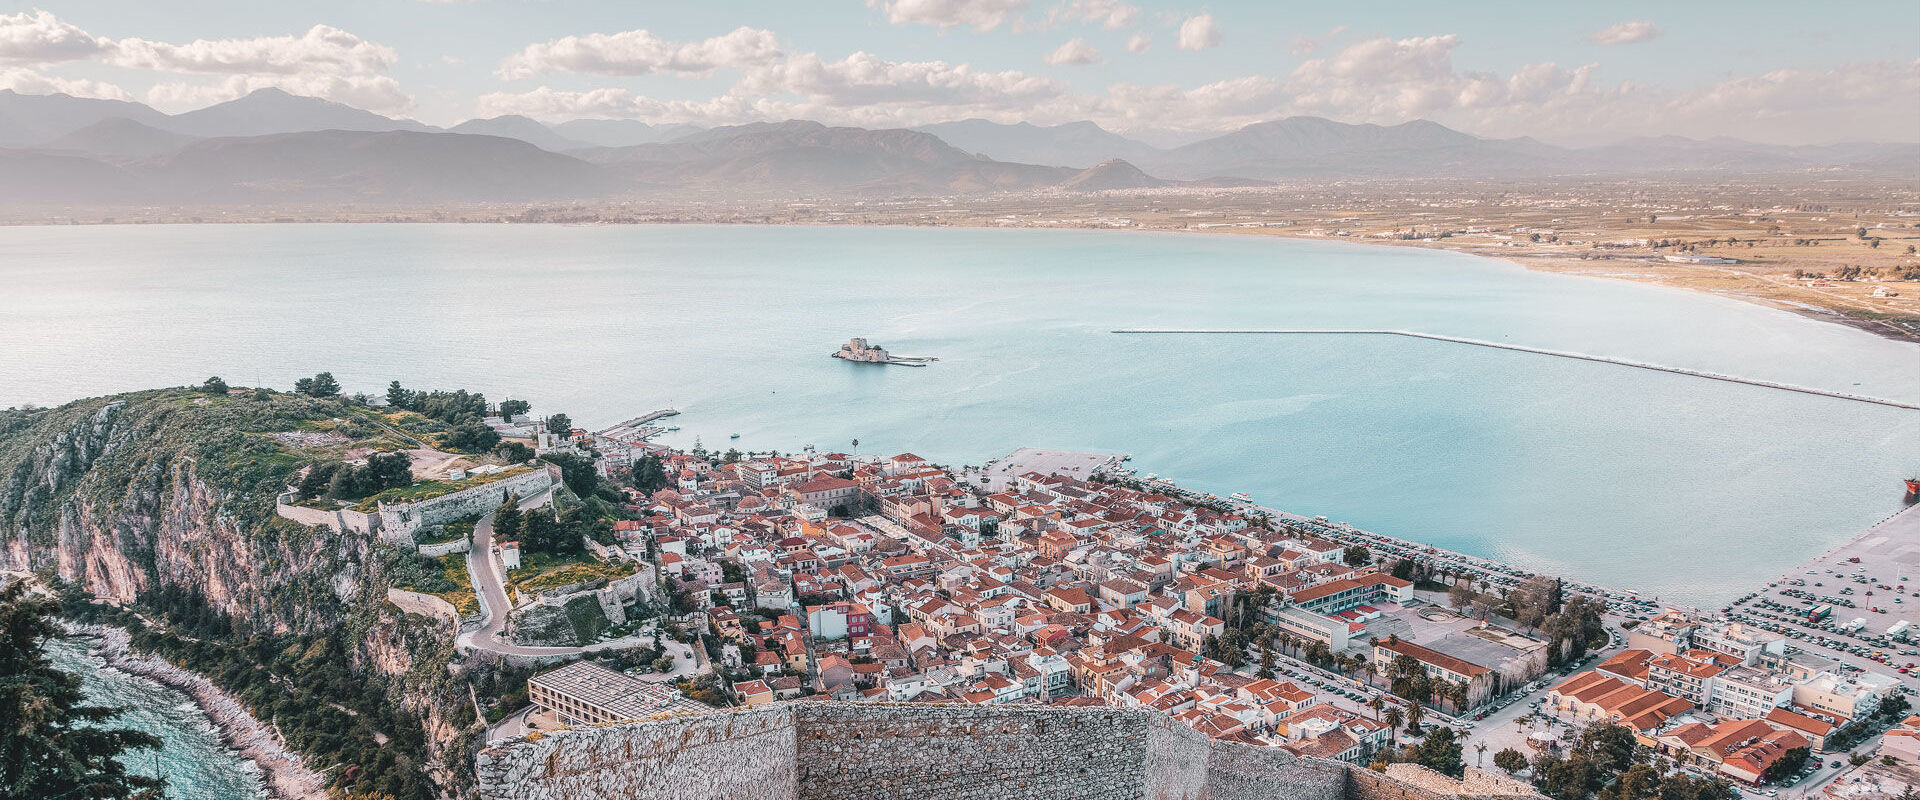 Far beyond the architecture, and the sheer size of the castle-like fortification, what you'll remember most are the panoramic views of Nafplio and the gulf beyond